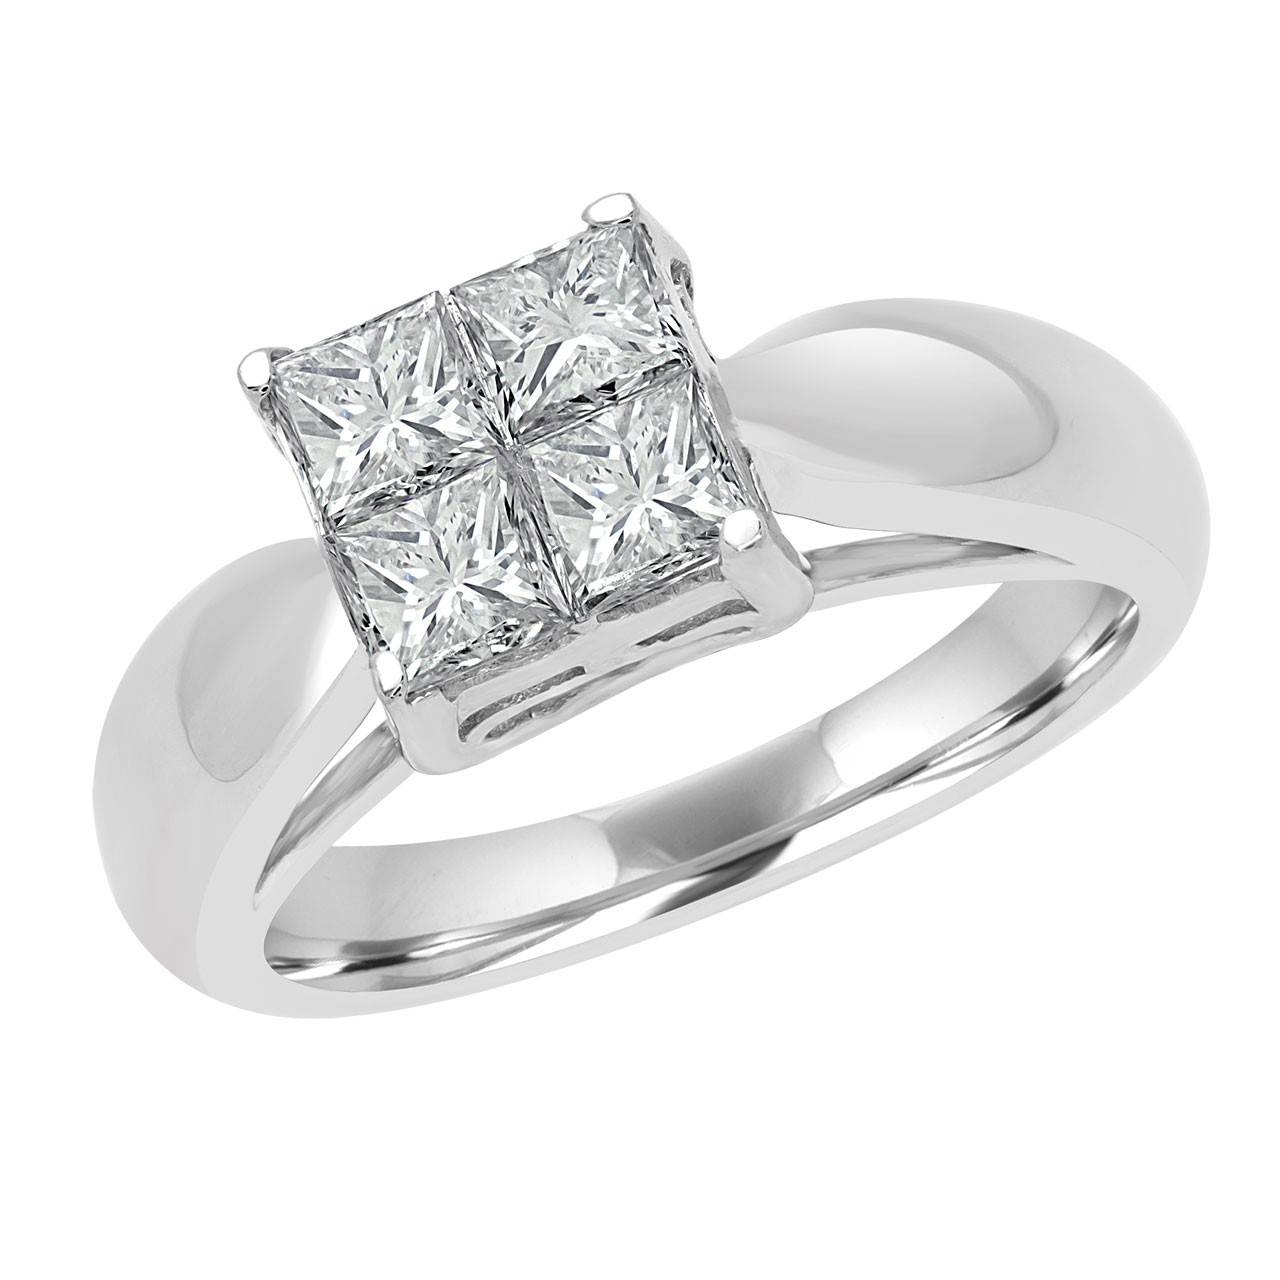 1 Carat (Ctw) Invisible Set Princess Cut Diamond Solitaire With Regard To Invisible Setting Engagement Rings (View 1 of 15)